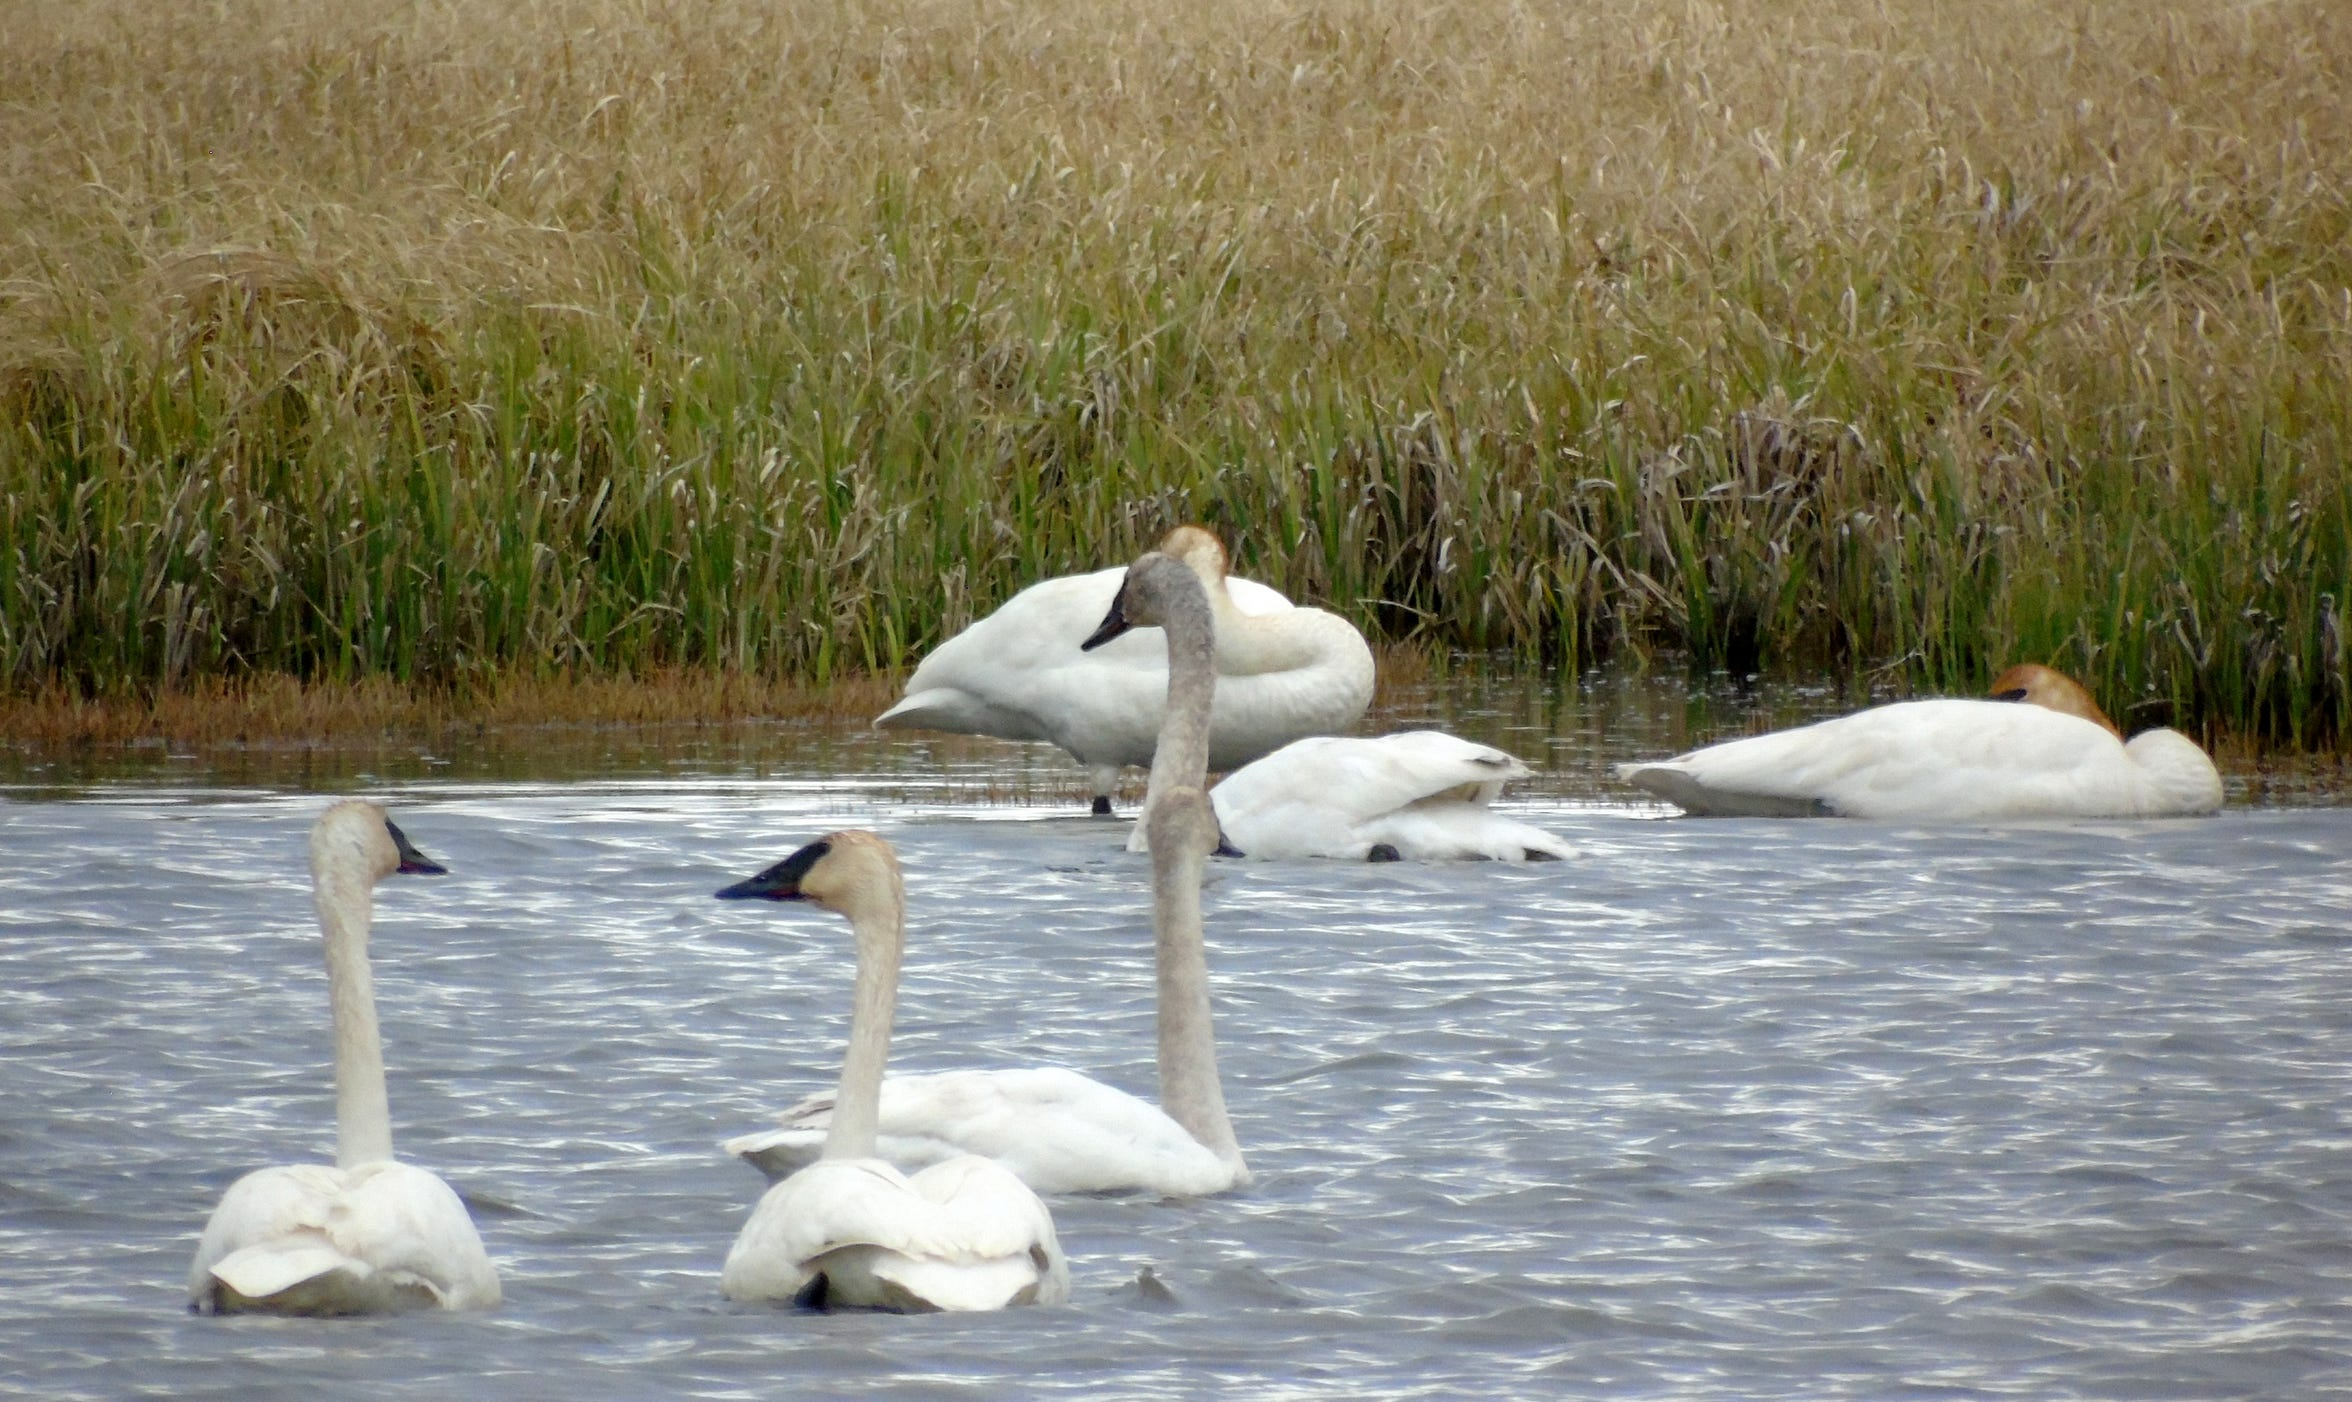 A herd of trumpeter swans gathers in the Red Rock Lakes National Wildlife Refuge in Montana's remote Centennial Valley. The male swans are cobs, the females are pens and the babies are cygnets.